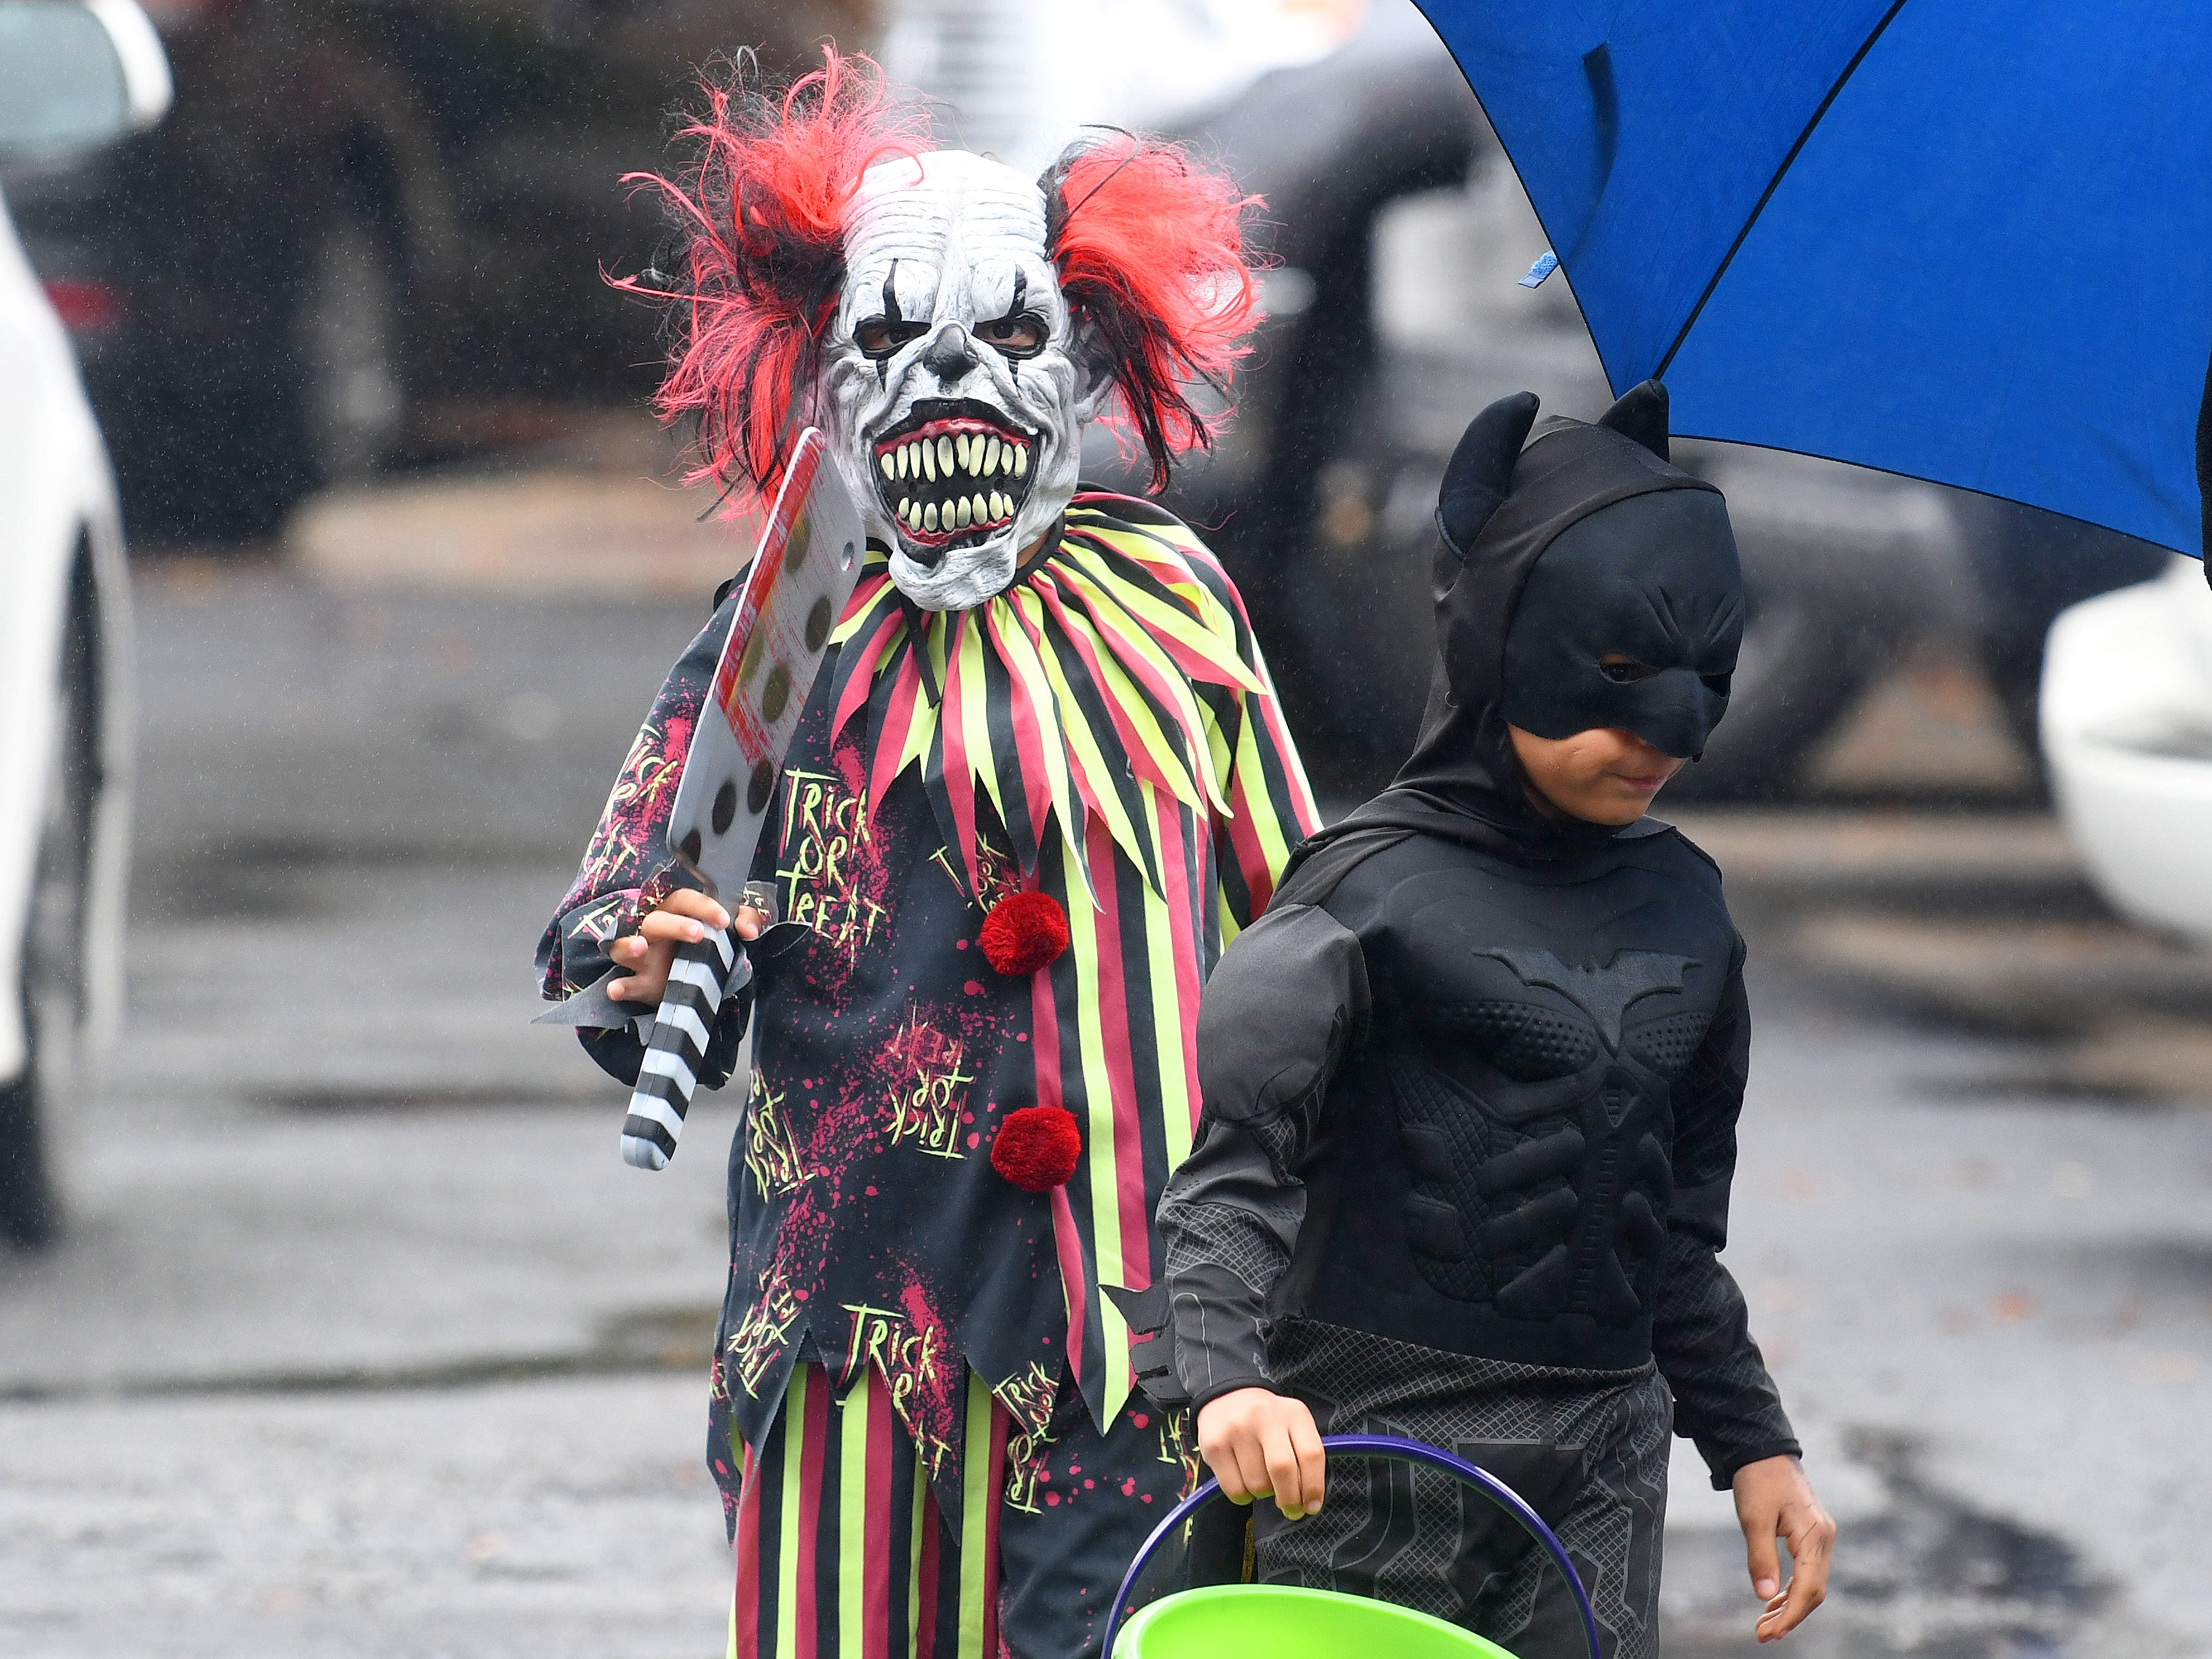 A clown that seems fitting to the season seems to be following Batman while trick-or-treating in downtown Staunton on Saturday, Oct. 27, 2018.